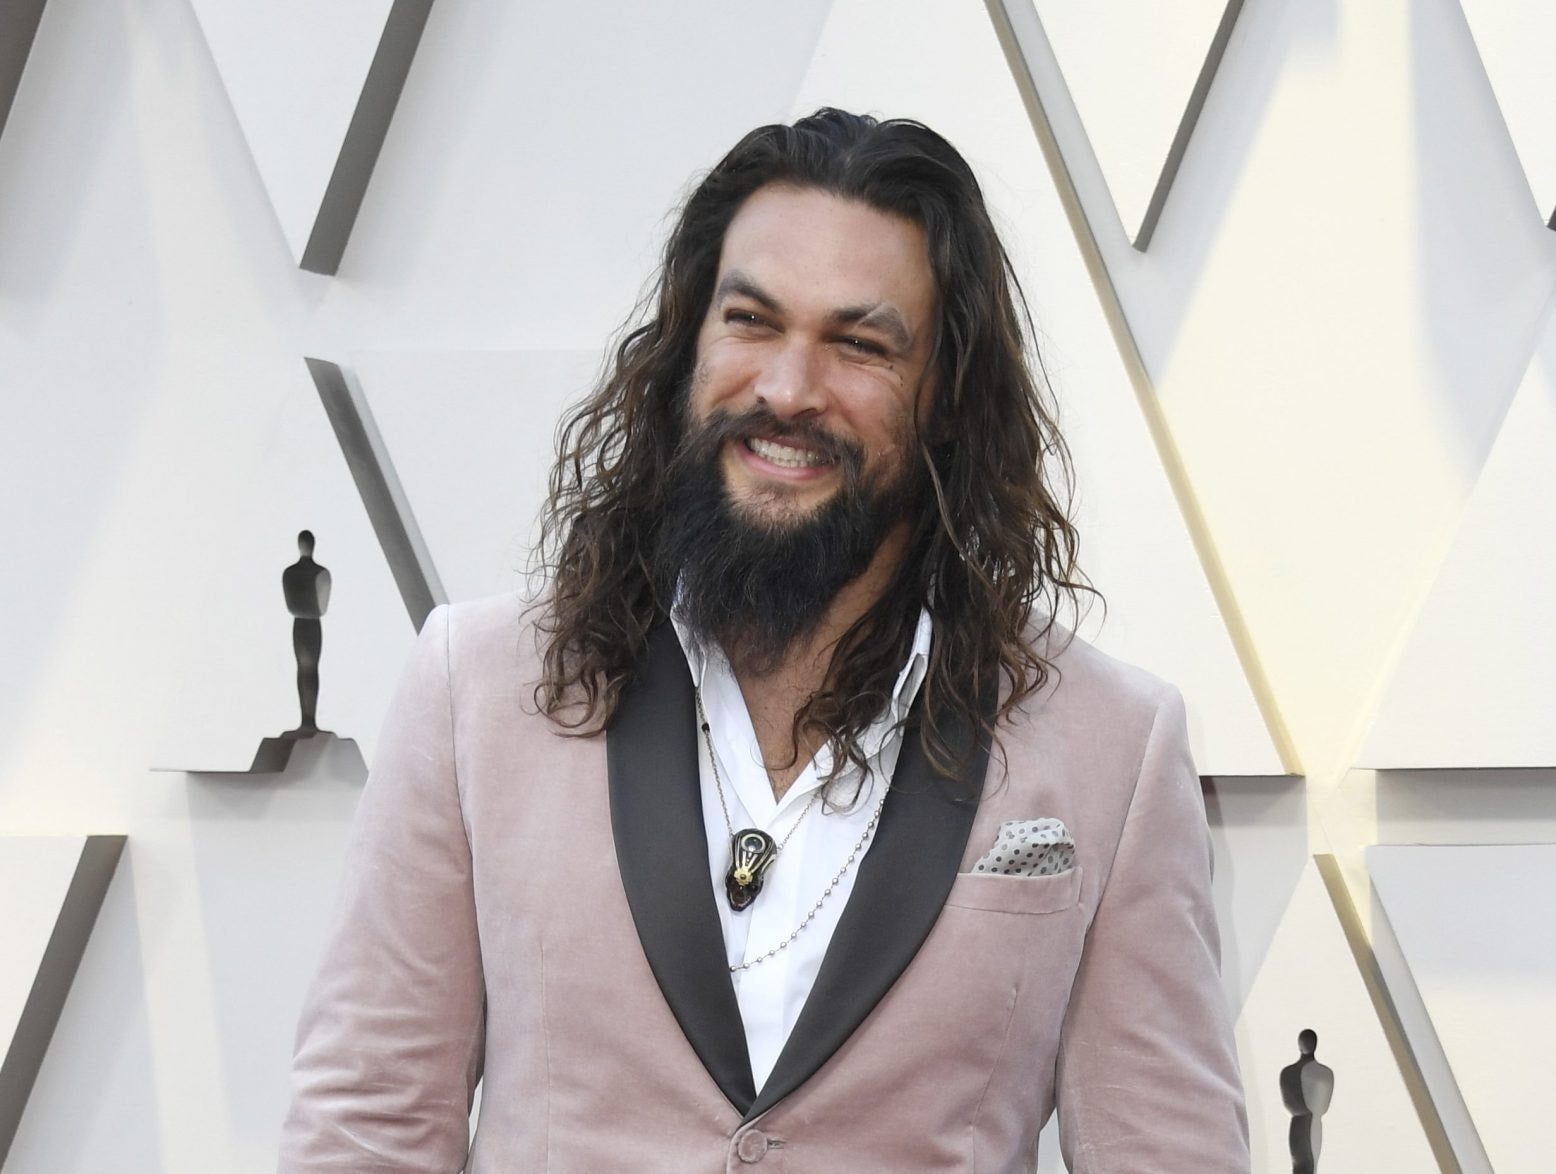 GALLERY: Jason Mamoa and His Best Red Carpet Moments